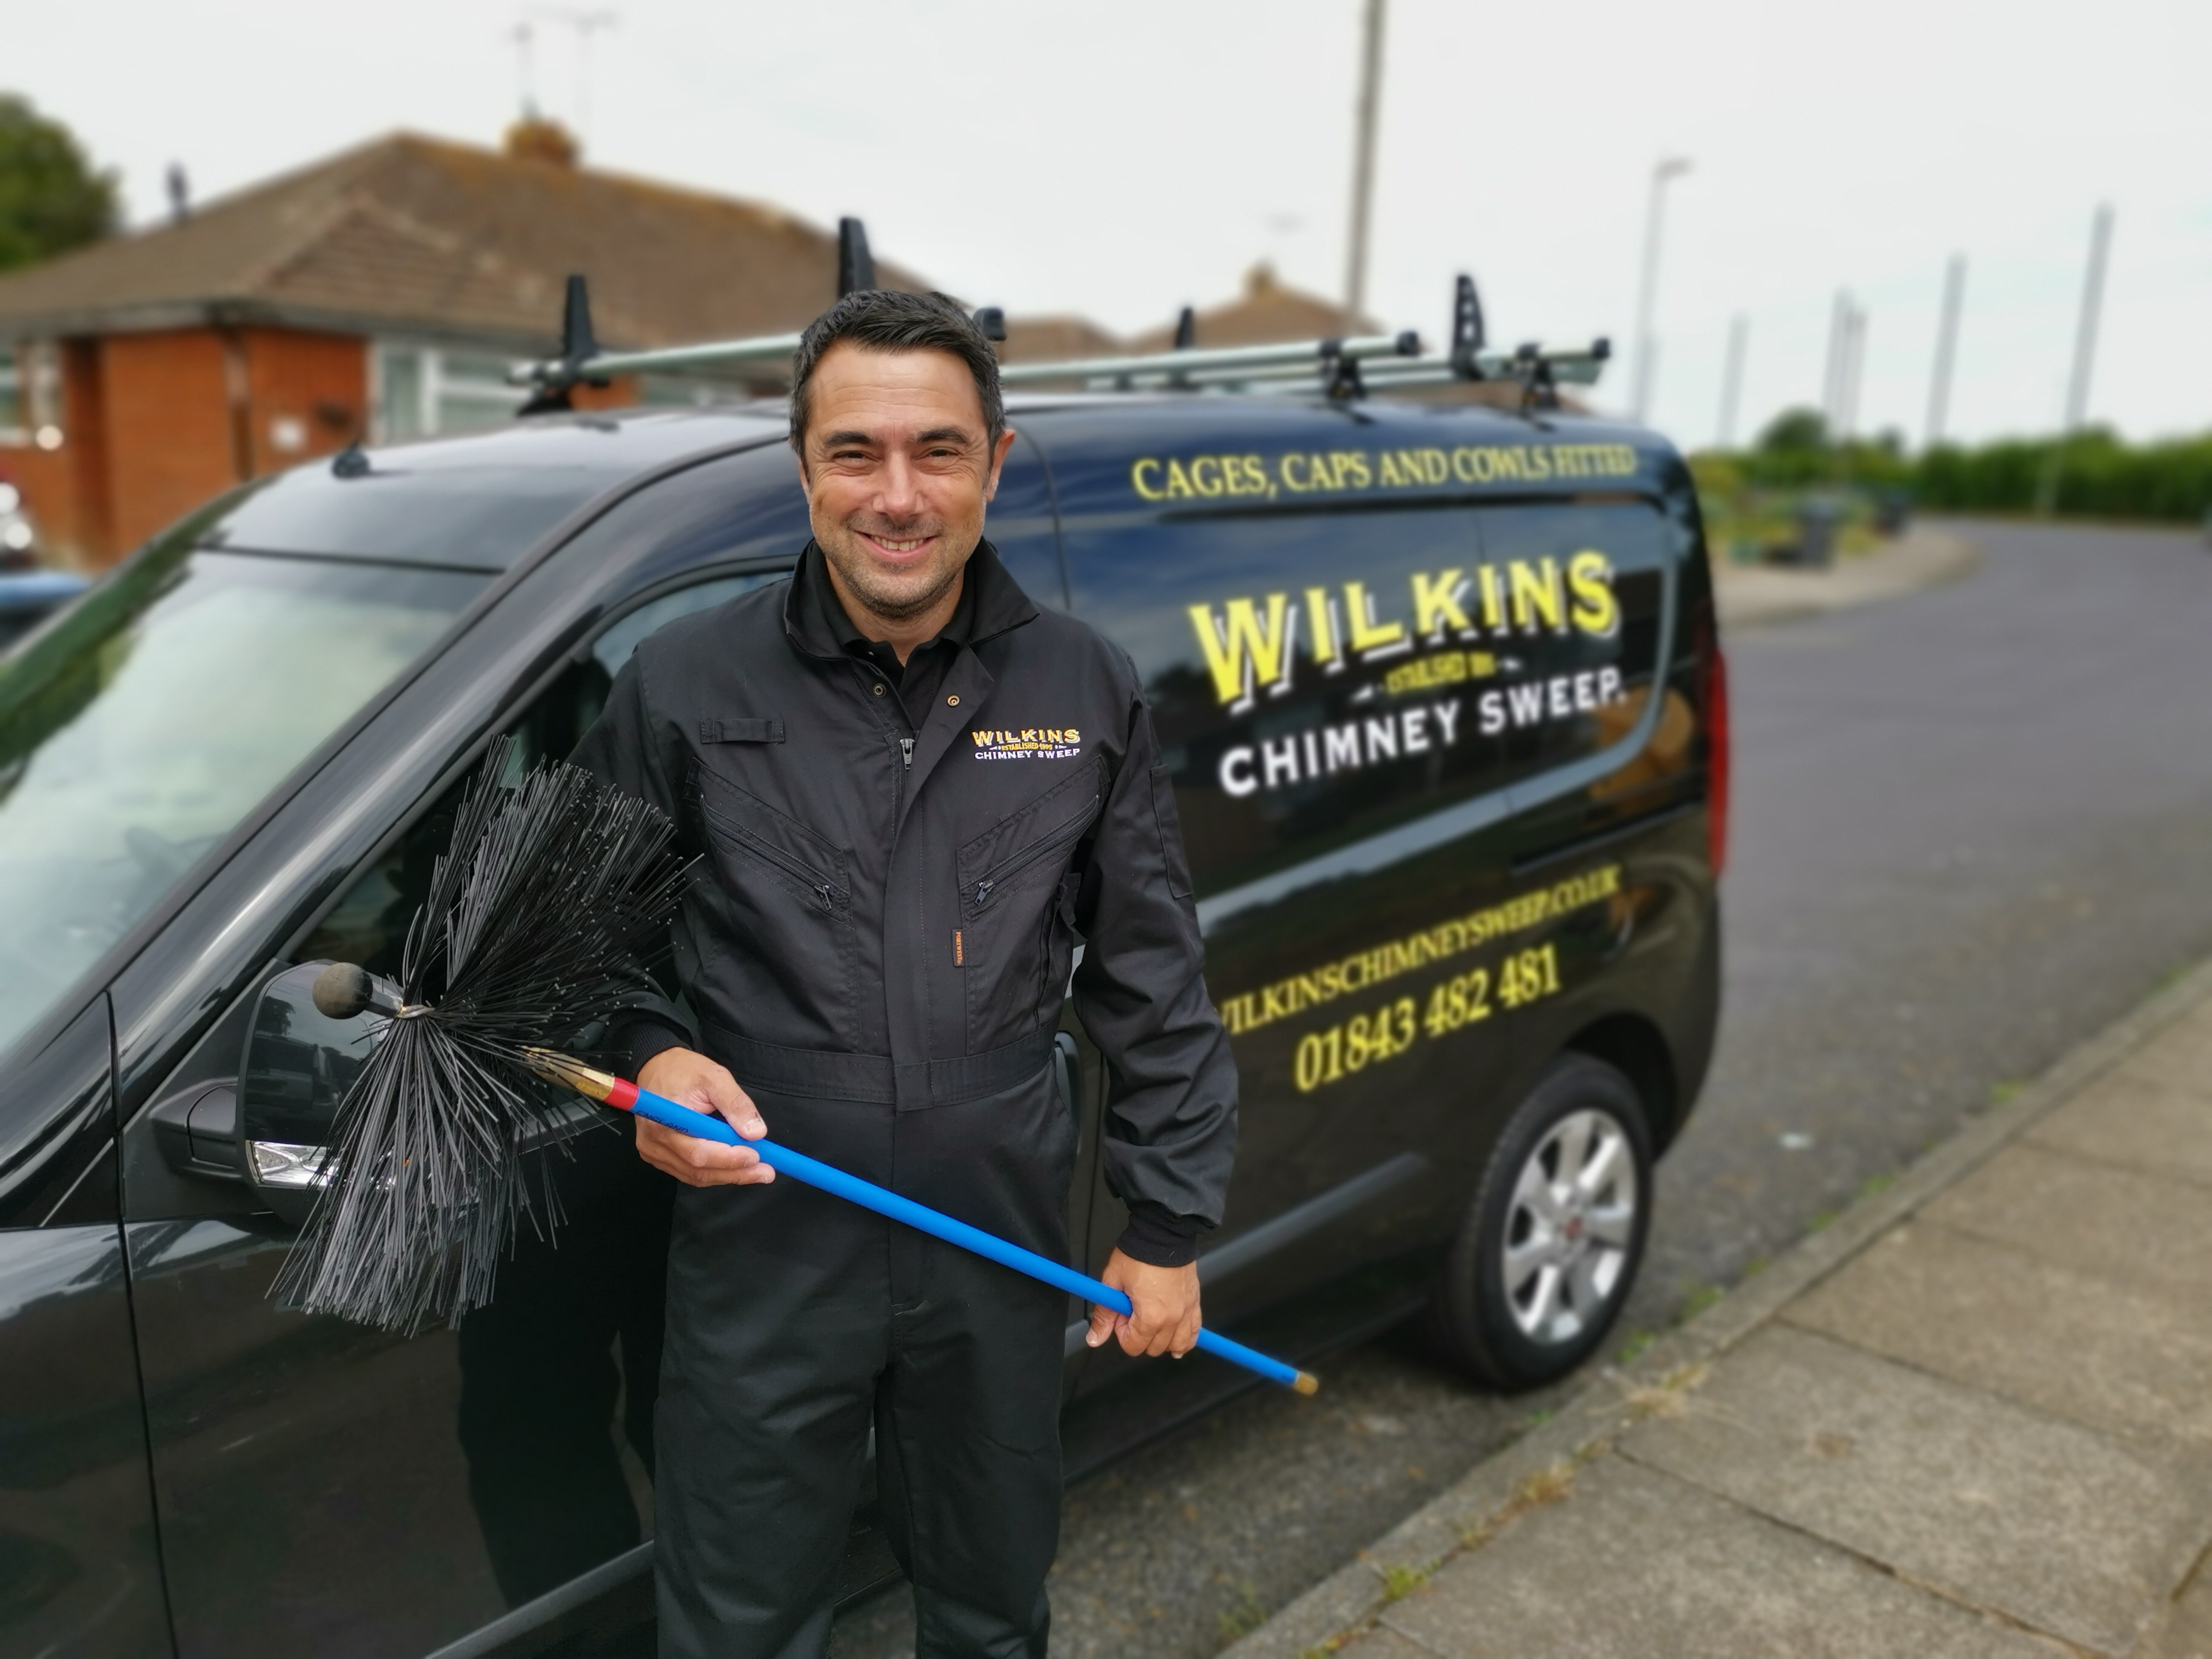 Latest Wilkins Chimney Sweep Franchisee Smashes Start Up Records!